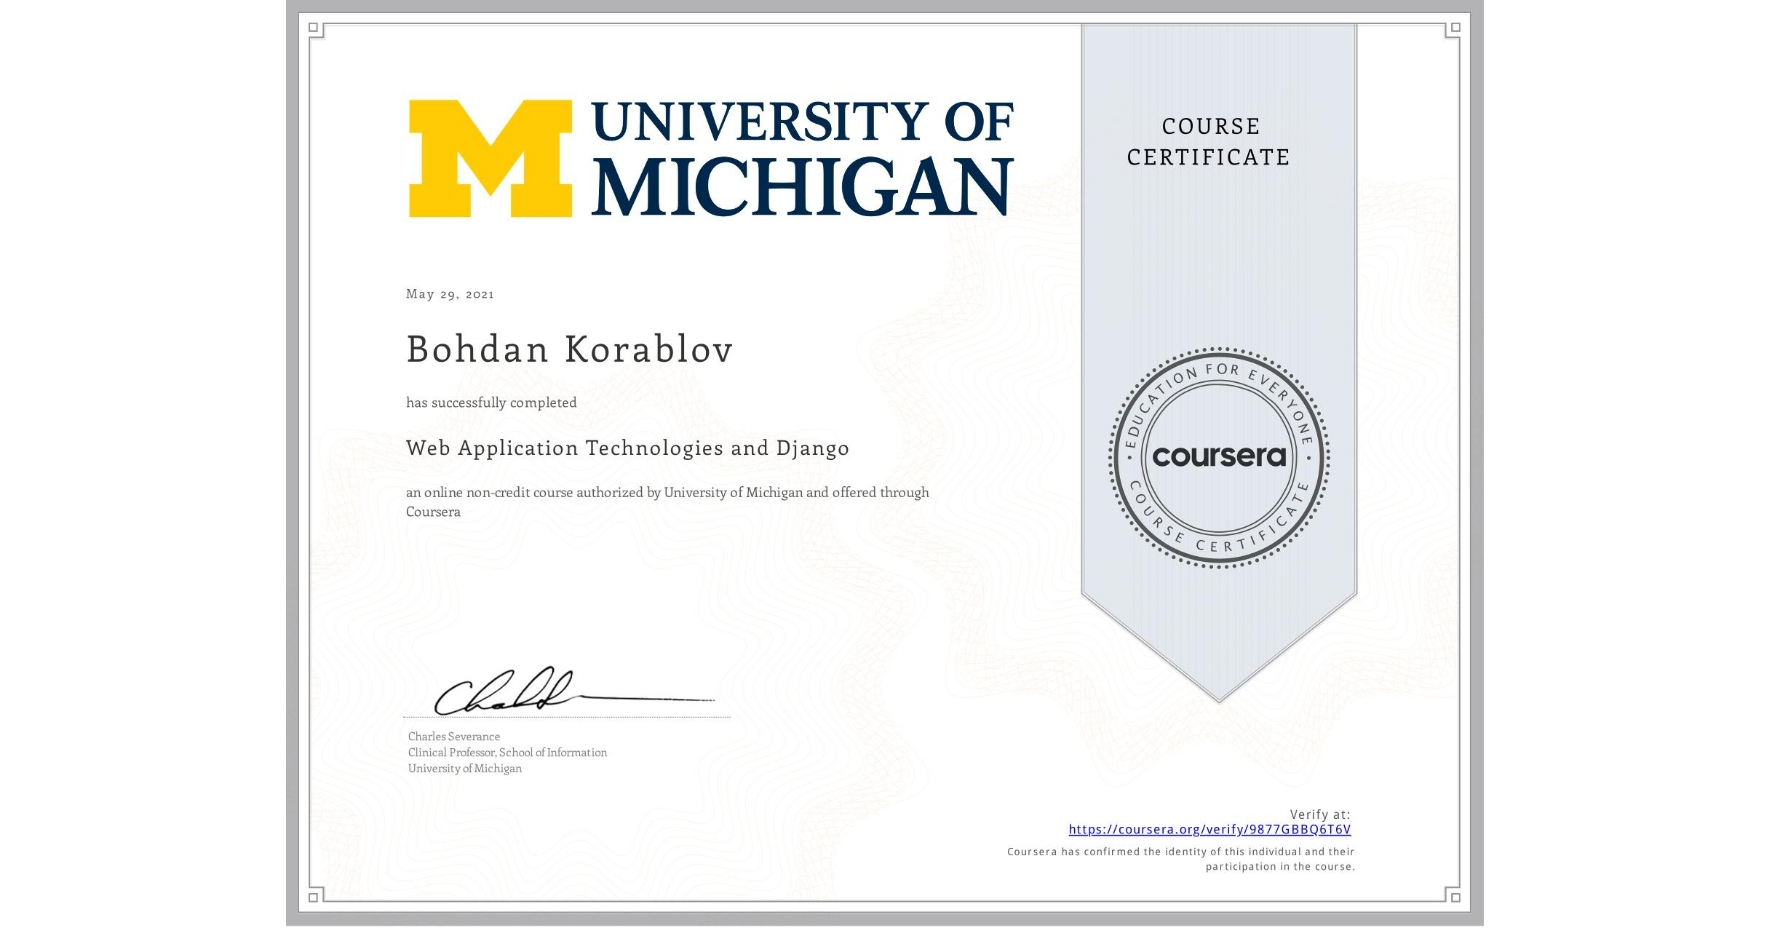 View certificate for Bohdan Korablov, Web Application Technologies and Django, an online non-credit course authorized by University of Michigan and offered through Coursera